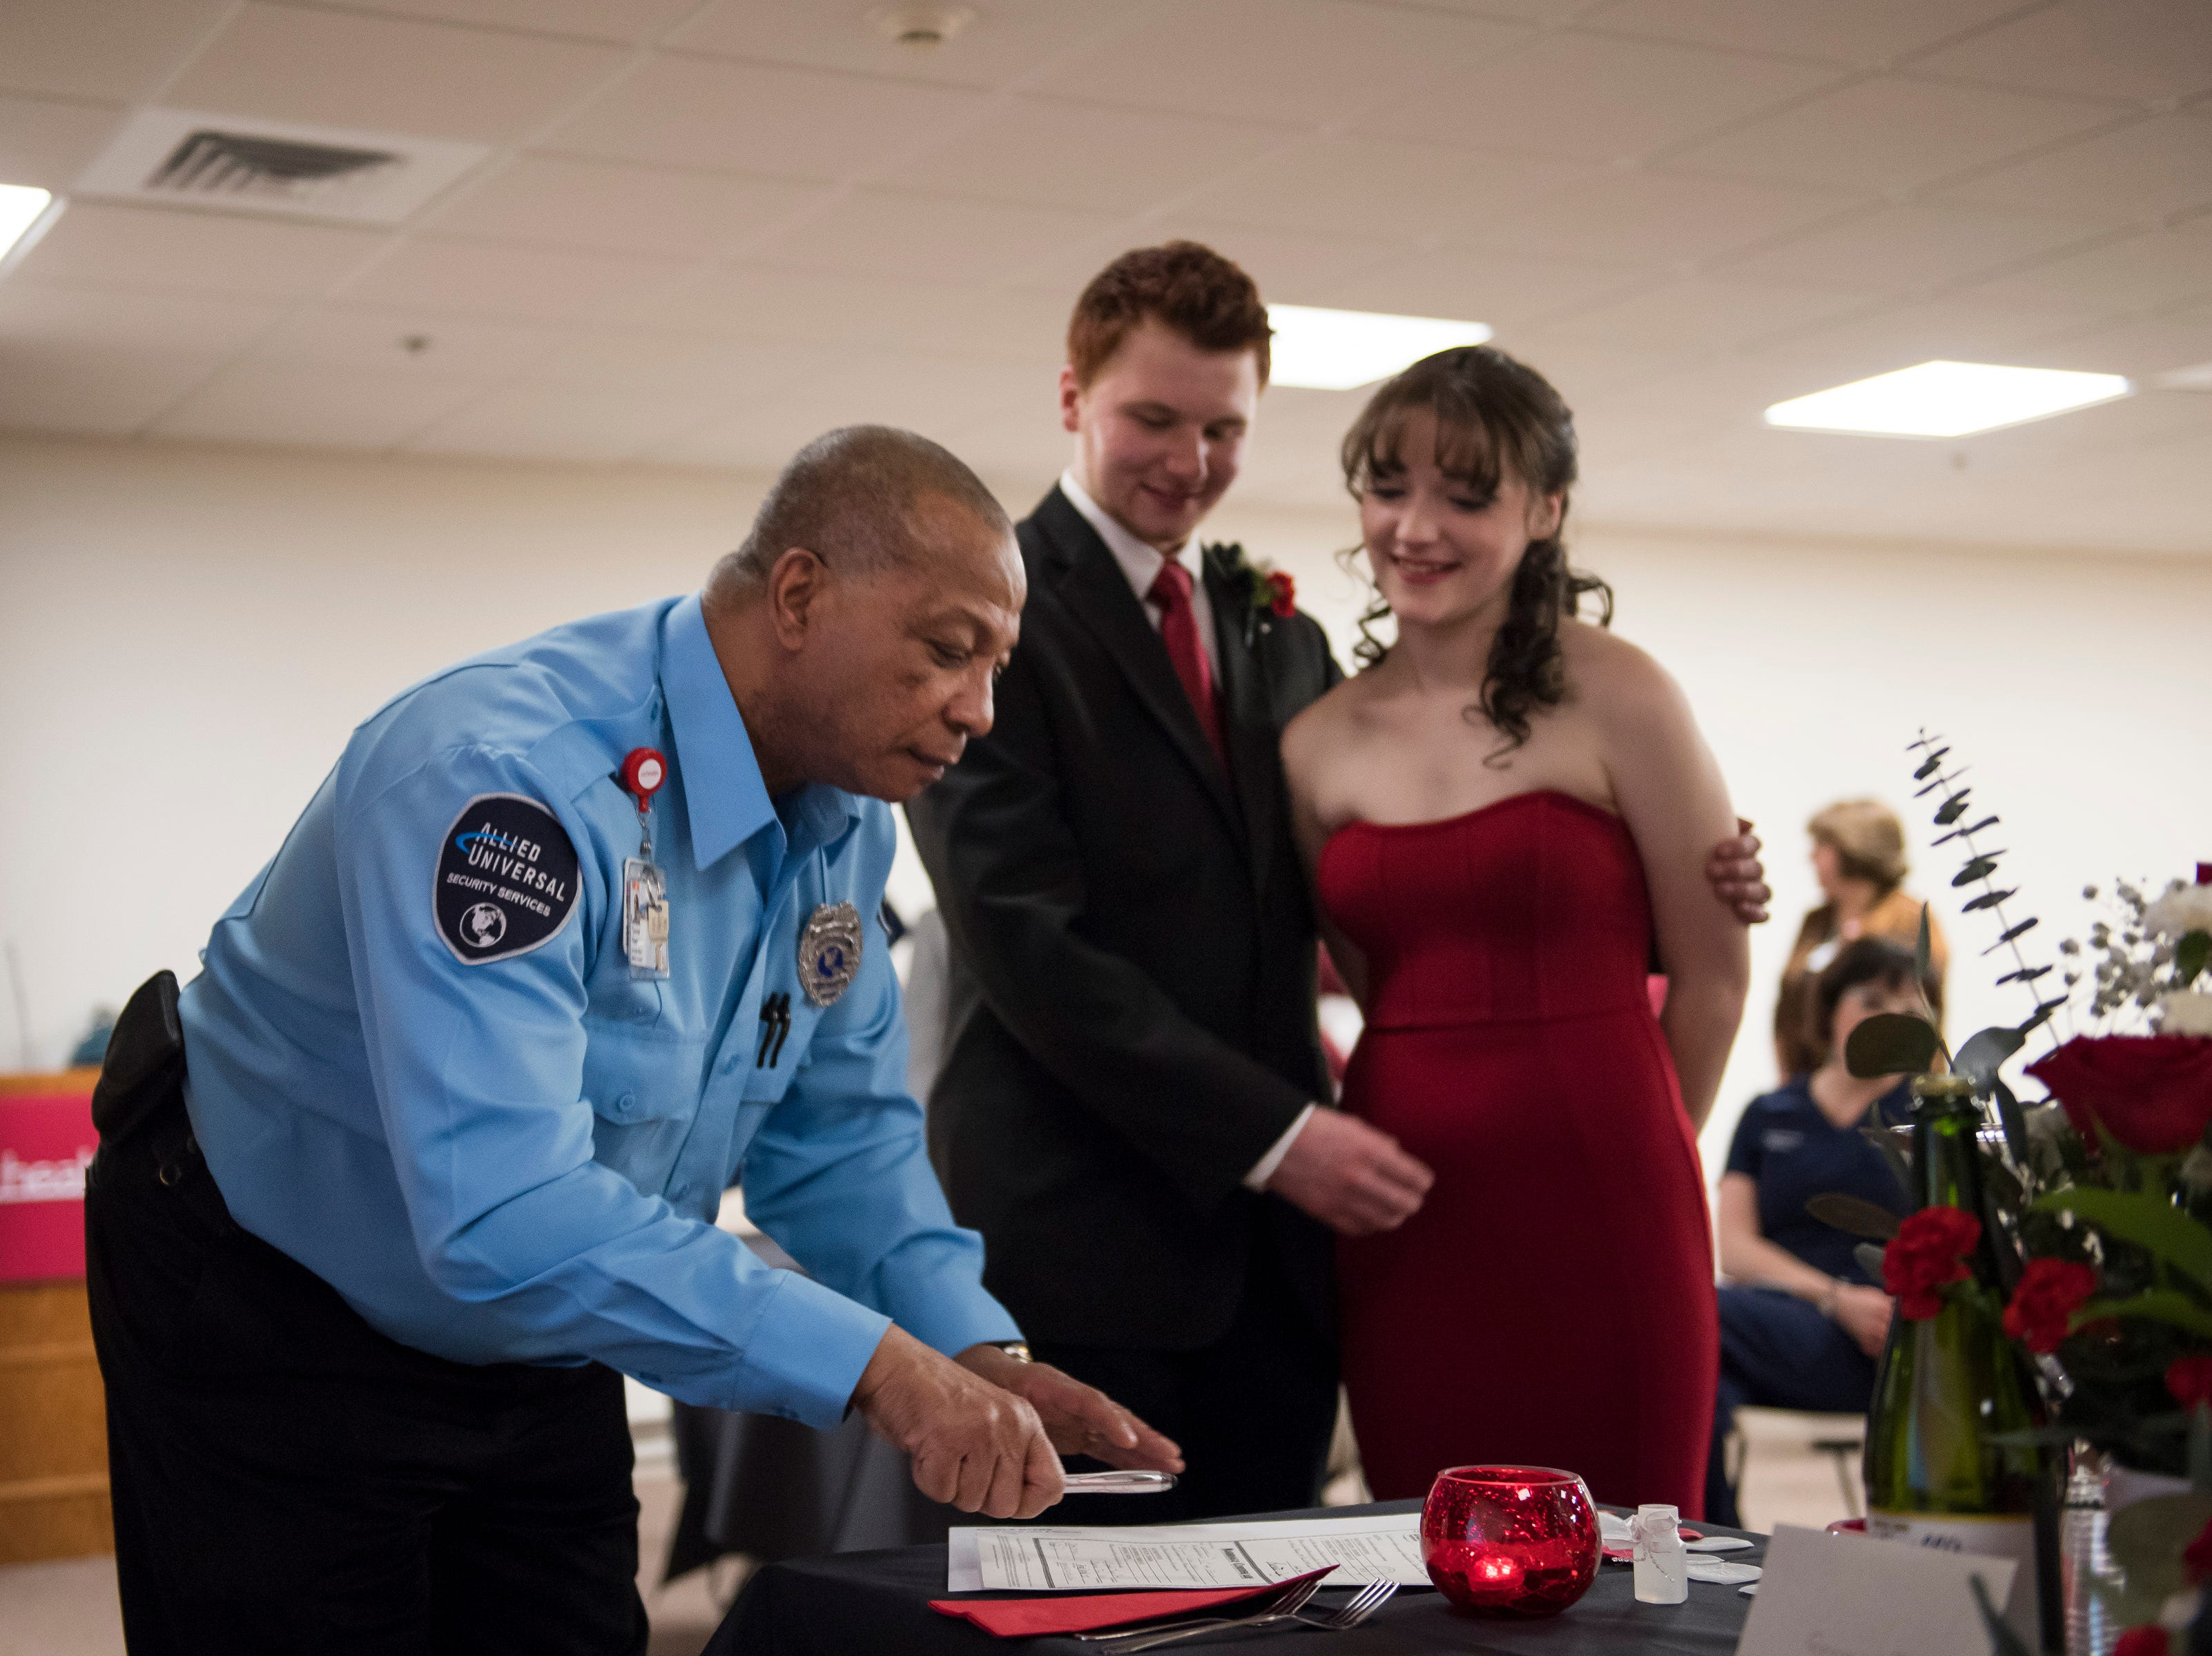 Security officer Tyrone Payne signs the marriage license as a witness for newlyweds James and Grace Christian on Thursday, Feb. 14, 2019, at UCHealth Poudre Valley Hospital in Fort Collins, Colo.